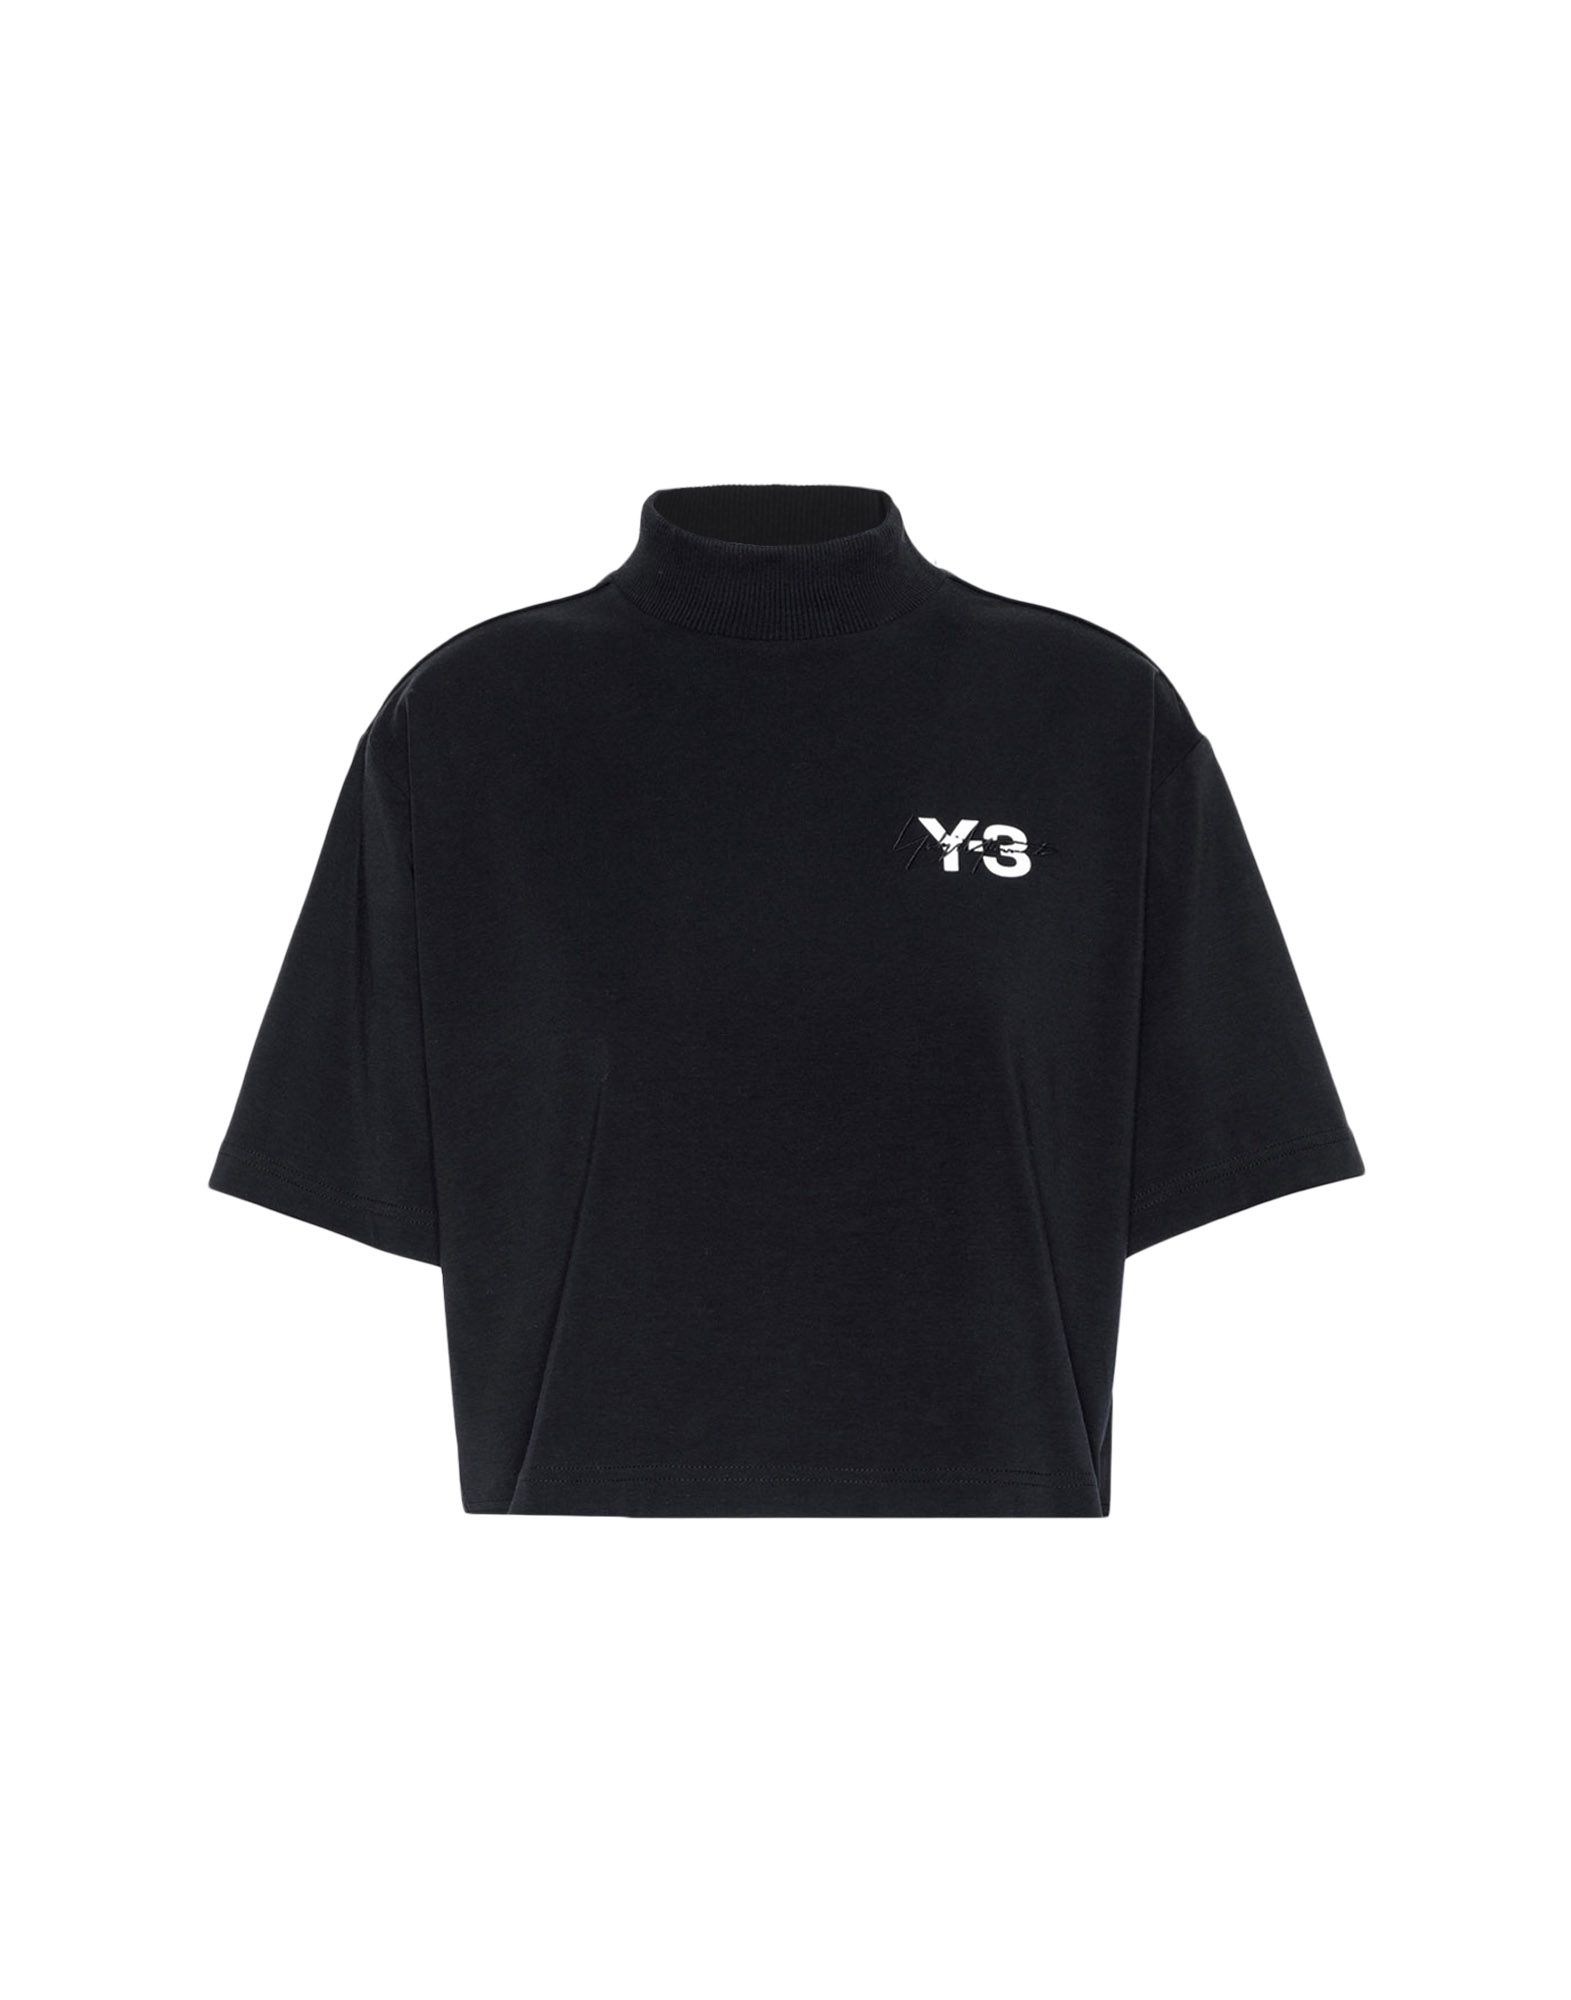 Y-3 Y-3 SIGNATURE CROP TEE Short sleeve t-shirt Woman f